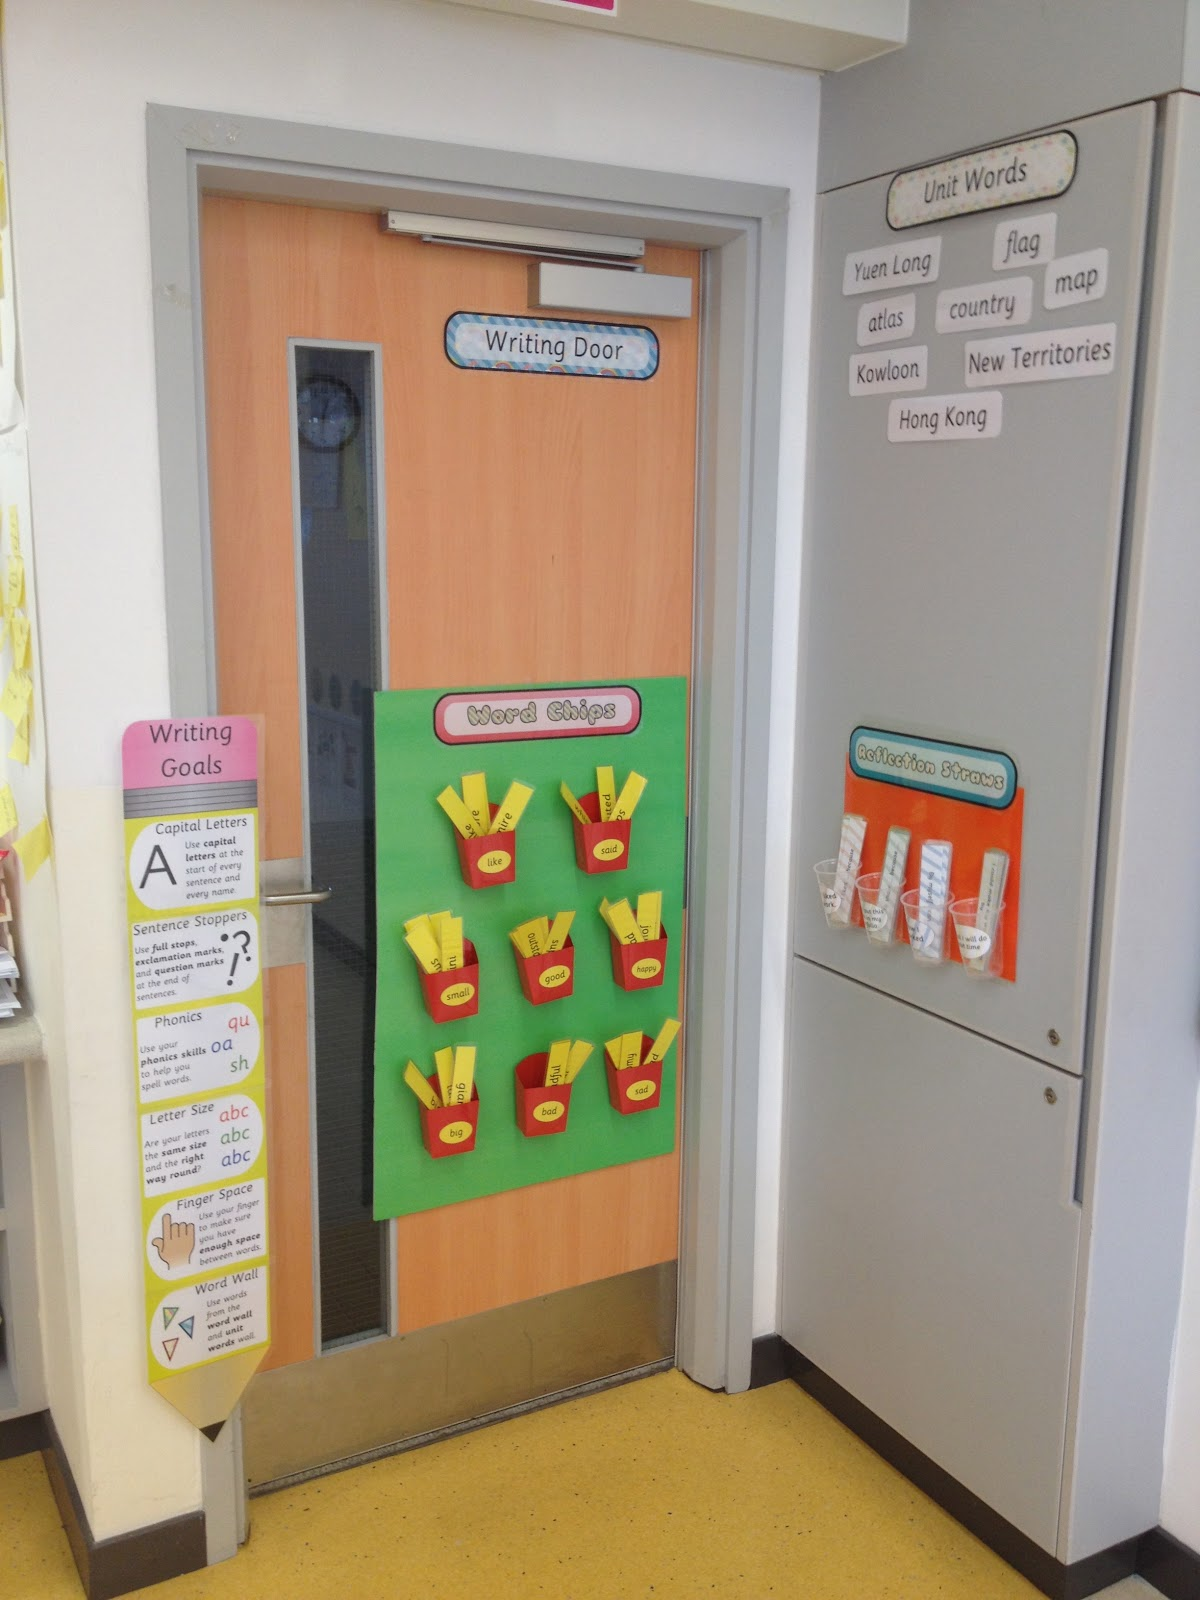 Writing Door - Word Synonym Chips & Home Room Period: Writing Door - Word Synonym Chips